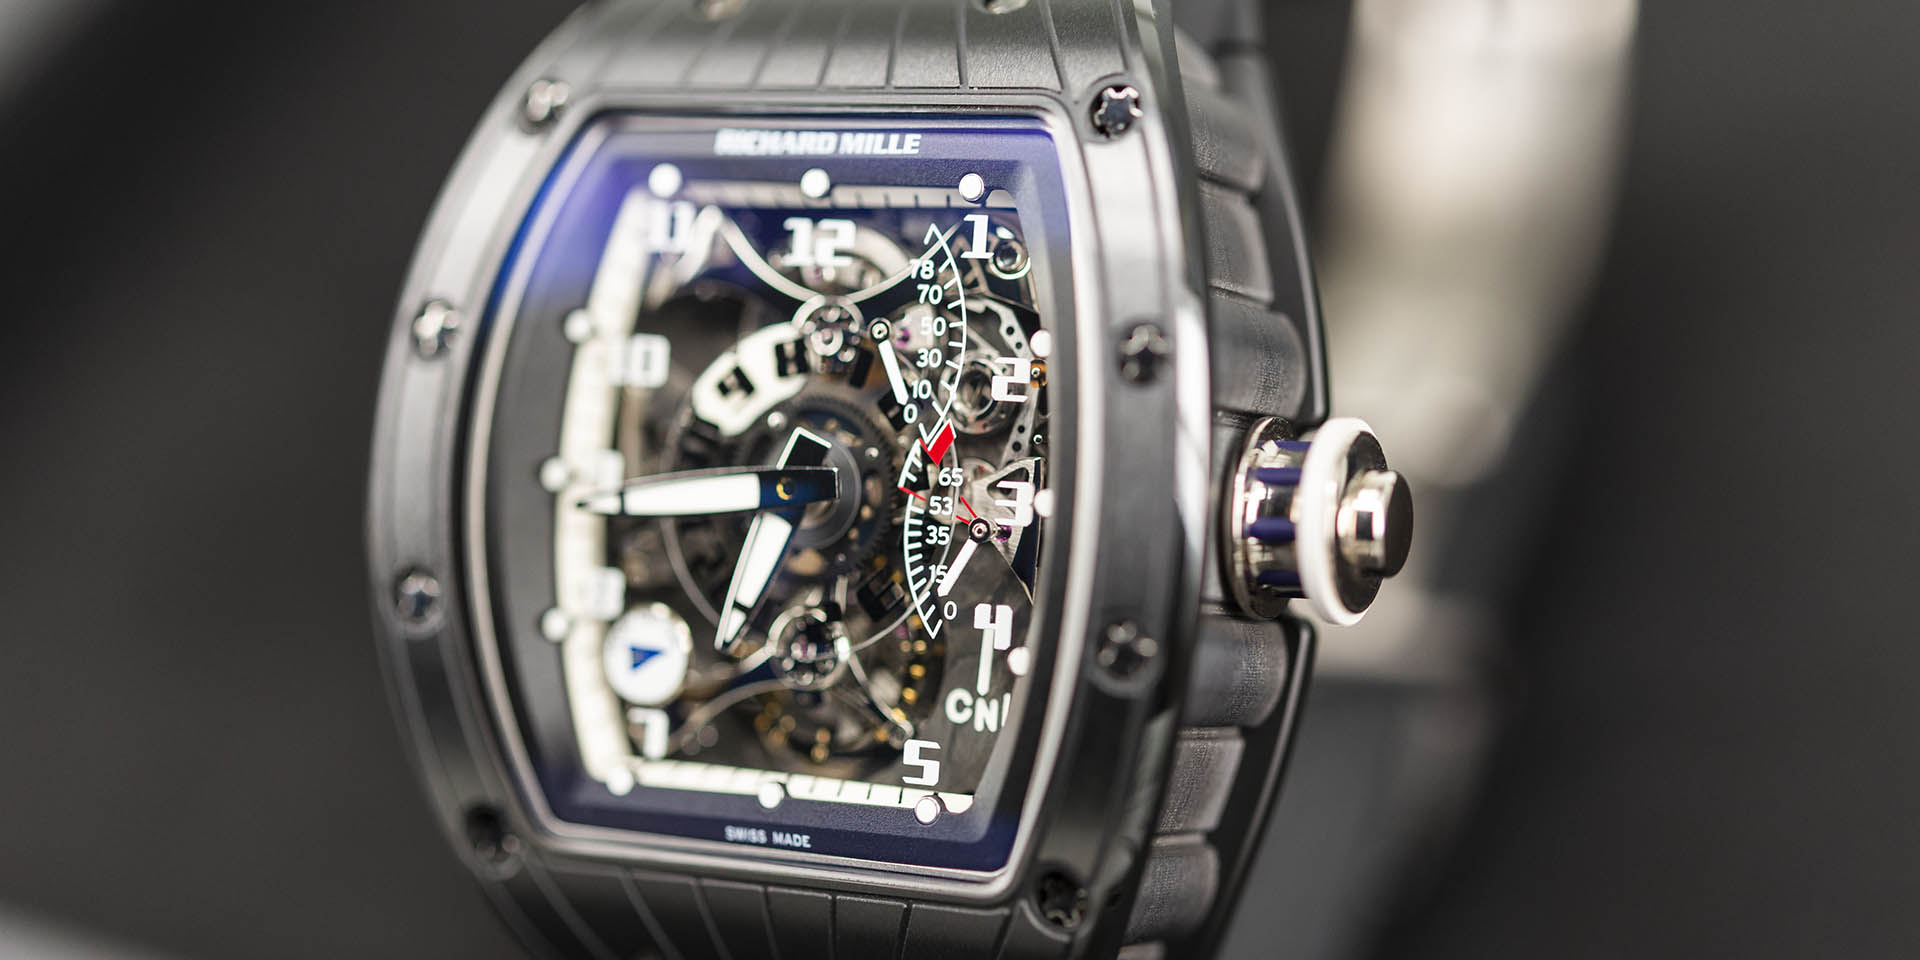 richard-mille-rm015-tourbillon-dual-time-zone-perini-navi-cup-1.jpg